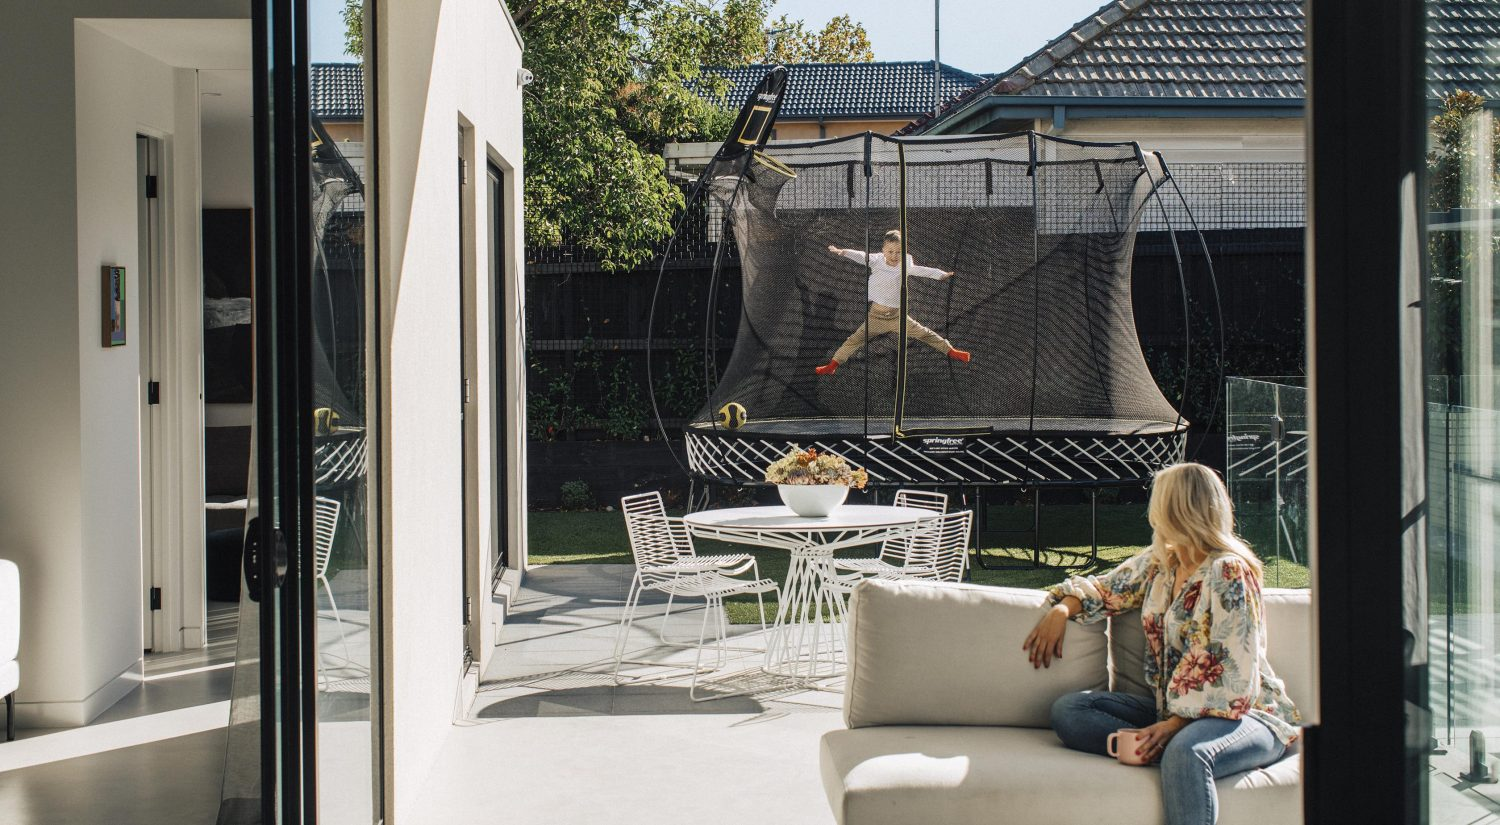 Springfree trampoline set up in backyard with outdoor setting